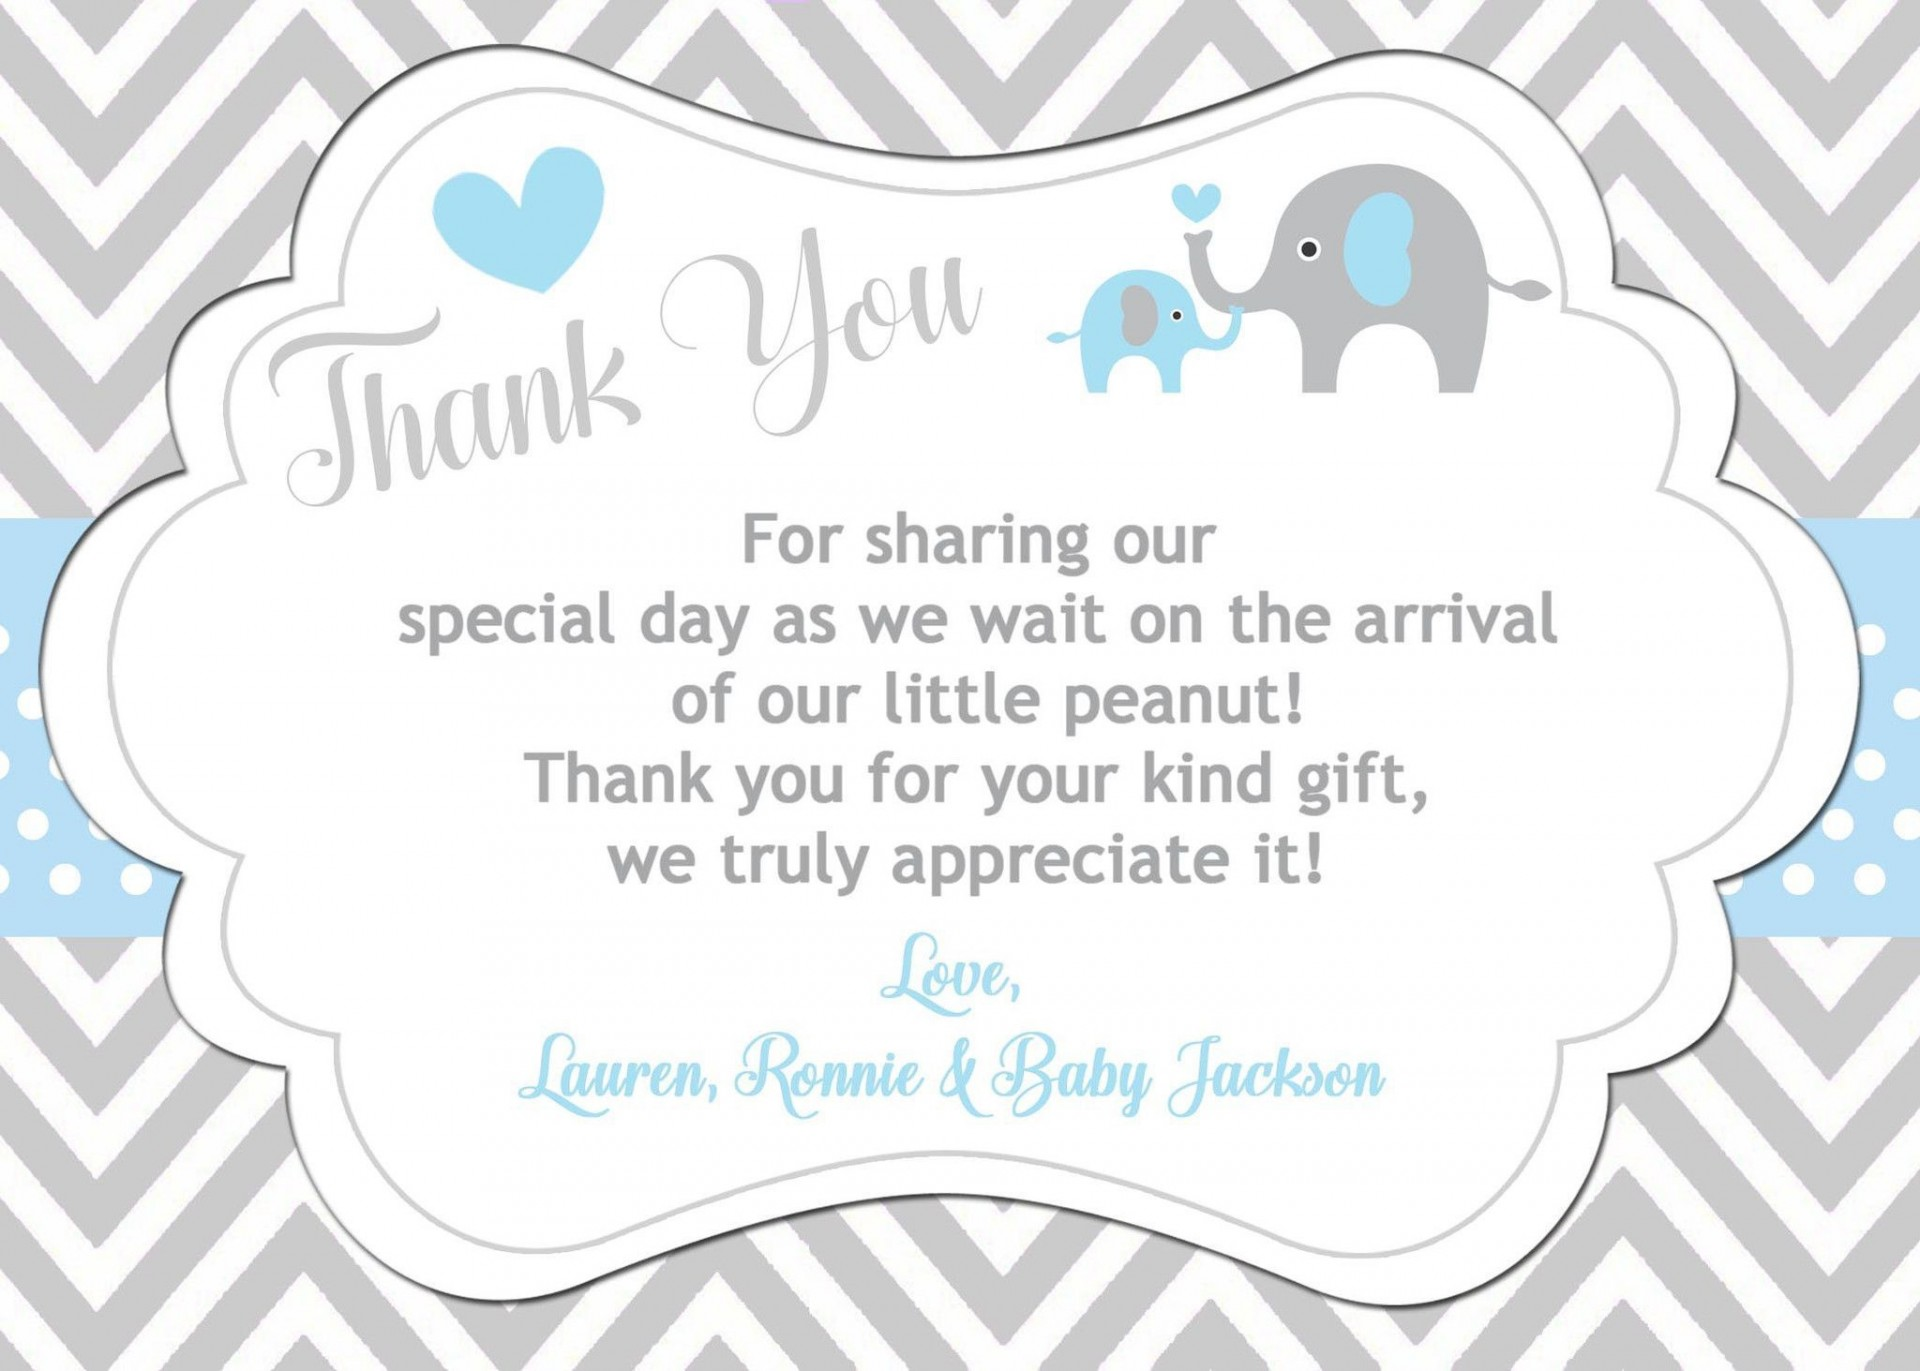 003 Sensational Thank You Note Wording Baby Shower High Definition  For Hosting Card1920